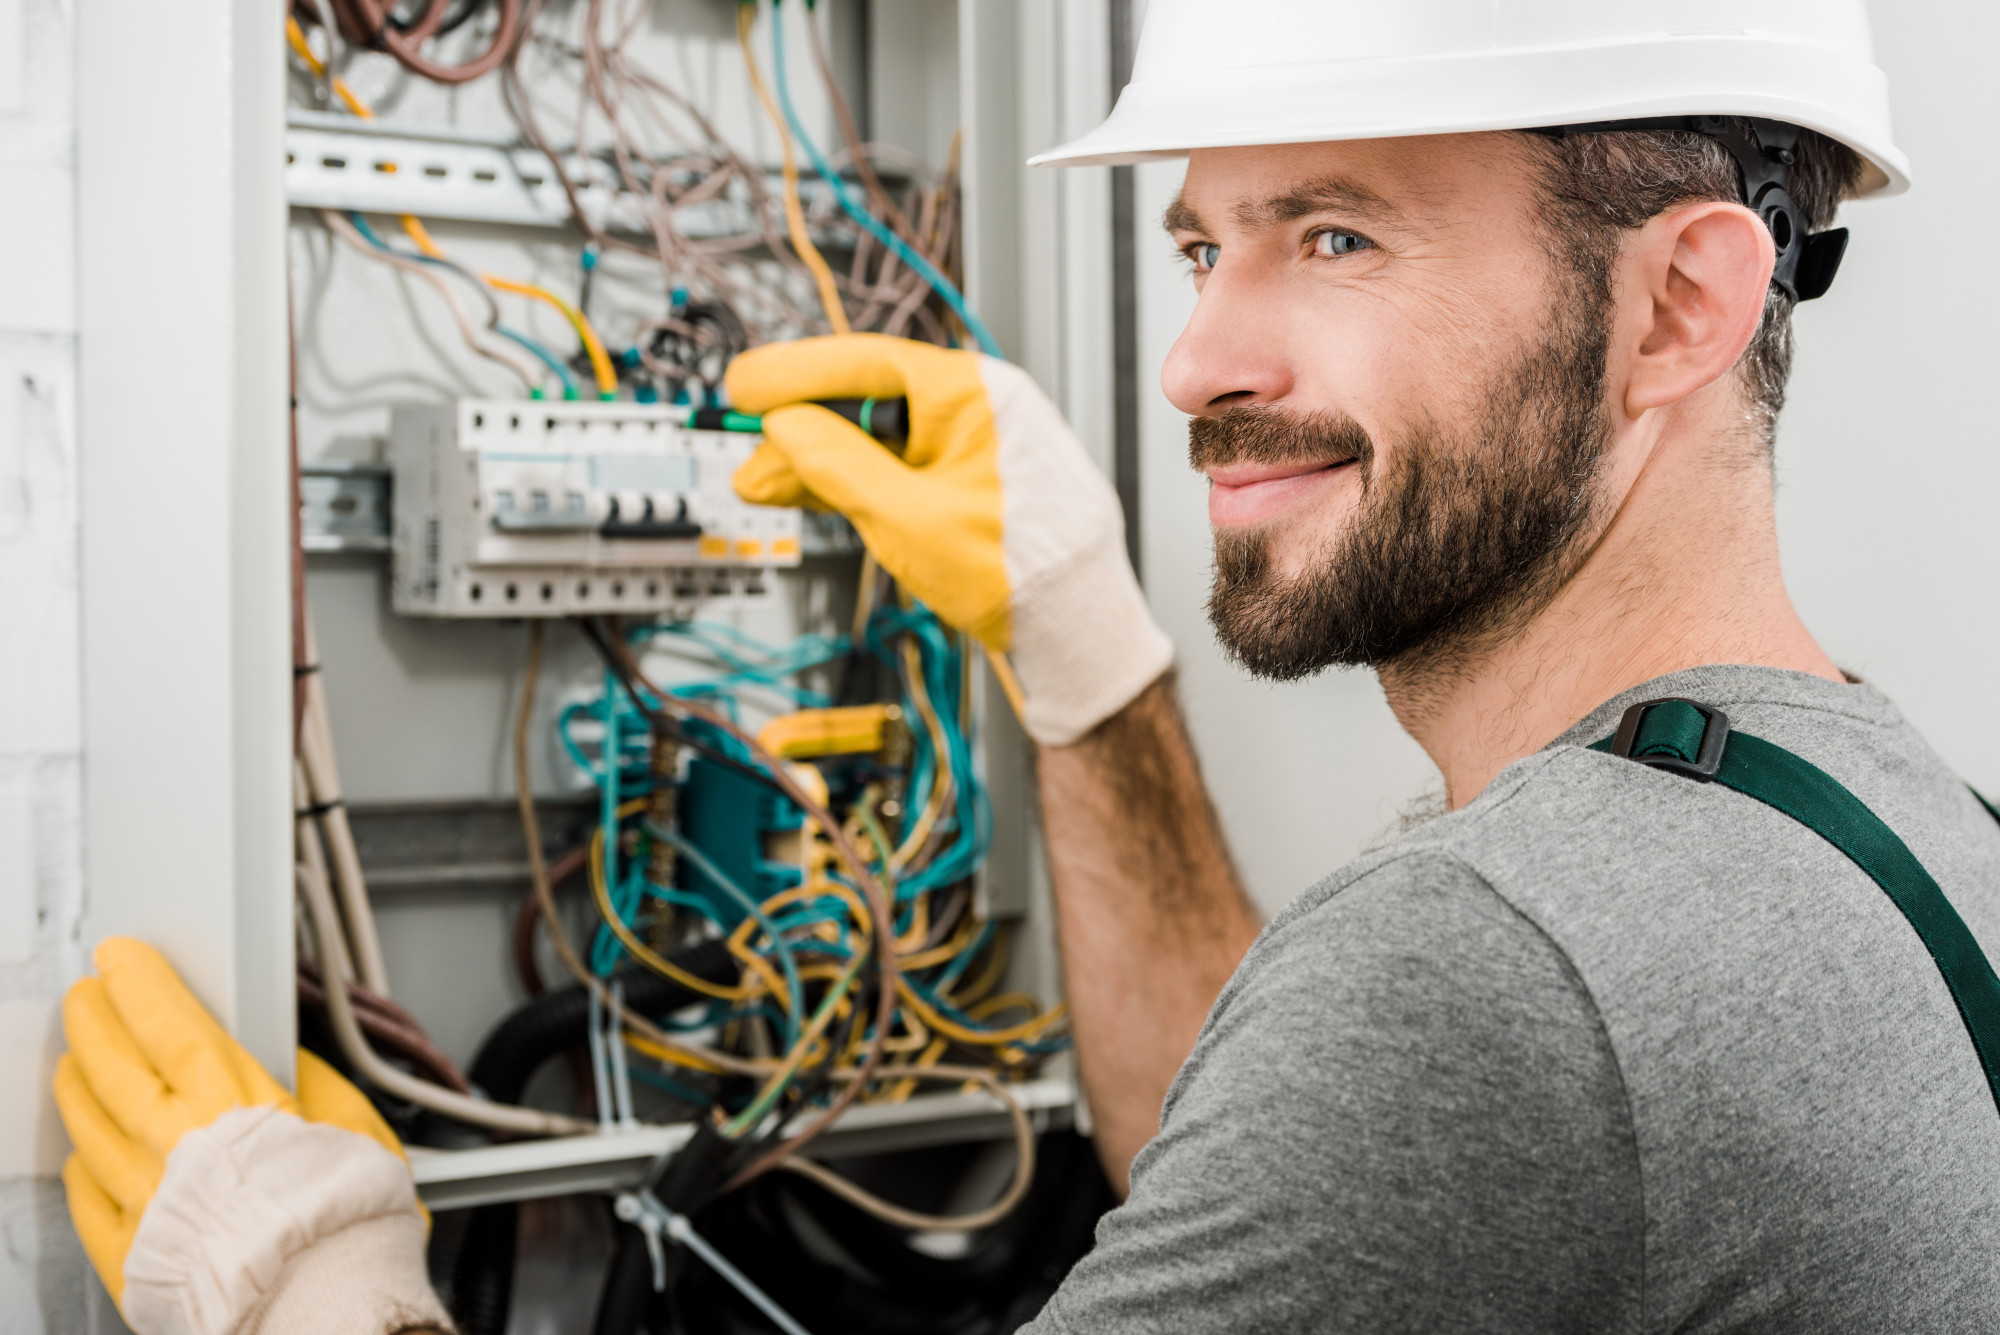 5 Simple Tips to Find a Good Electrician for Your Home